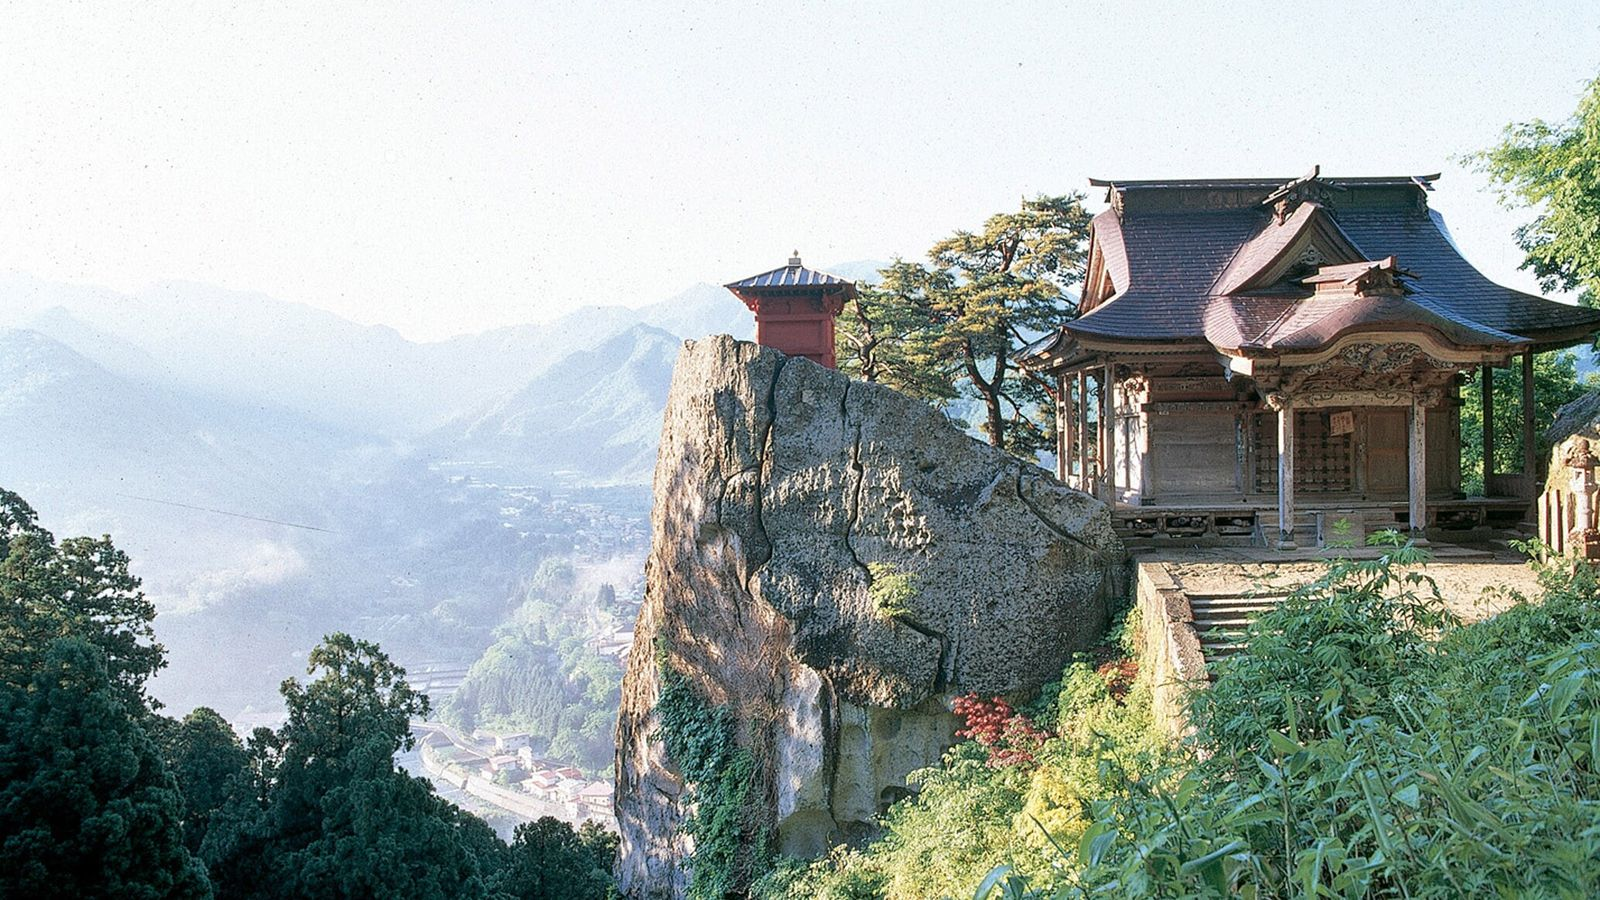 Built over a thousand years ago, the Yamadera temple is a picturesque spot in the mountains ...